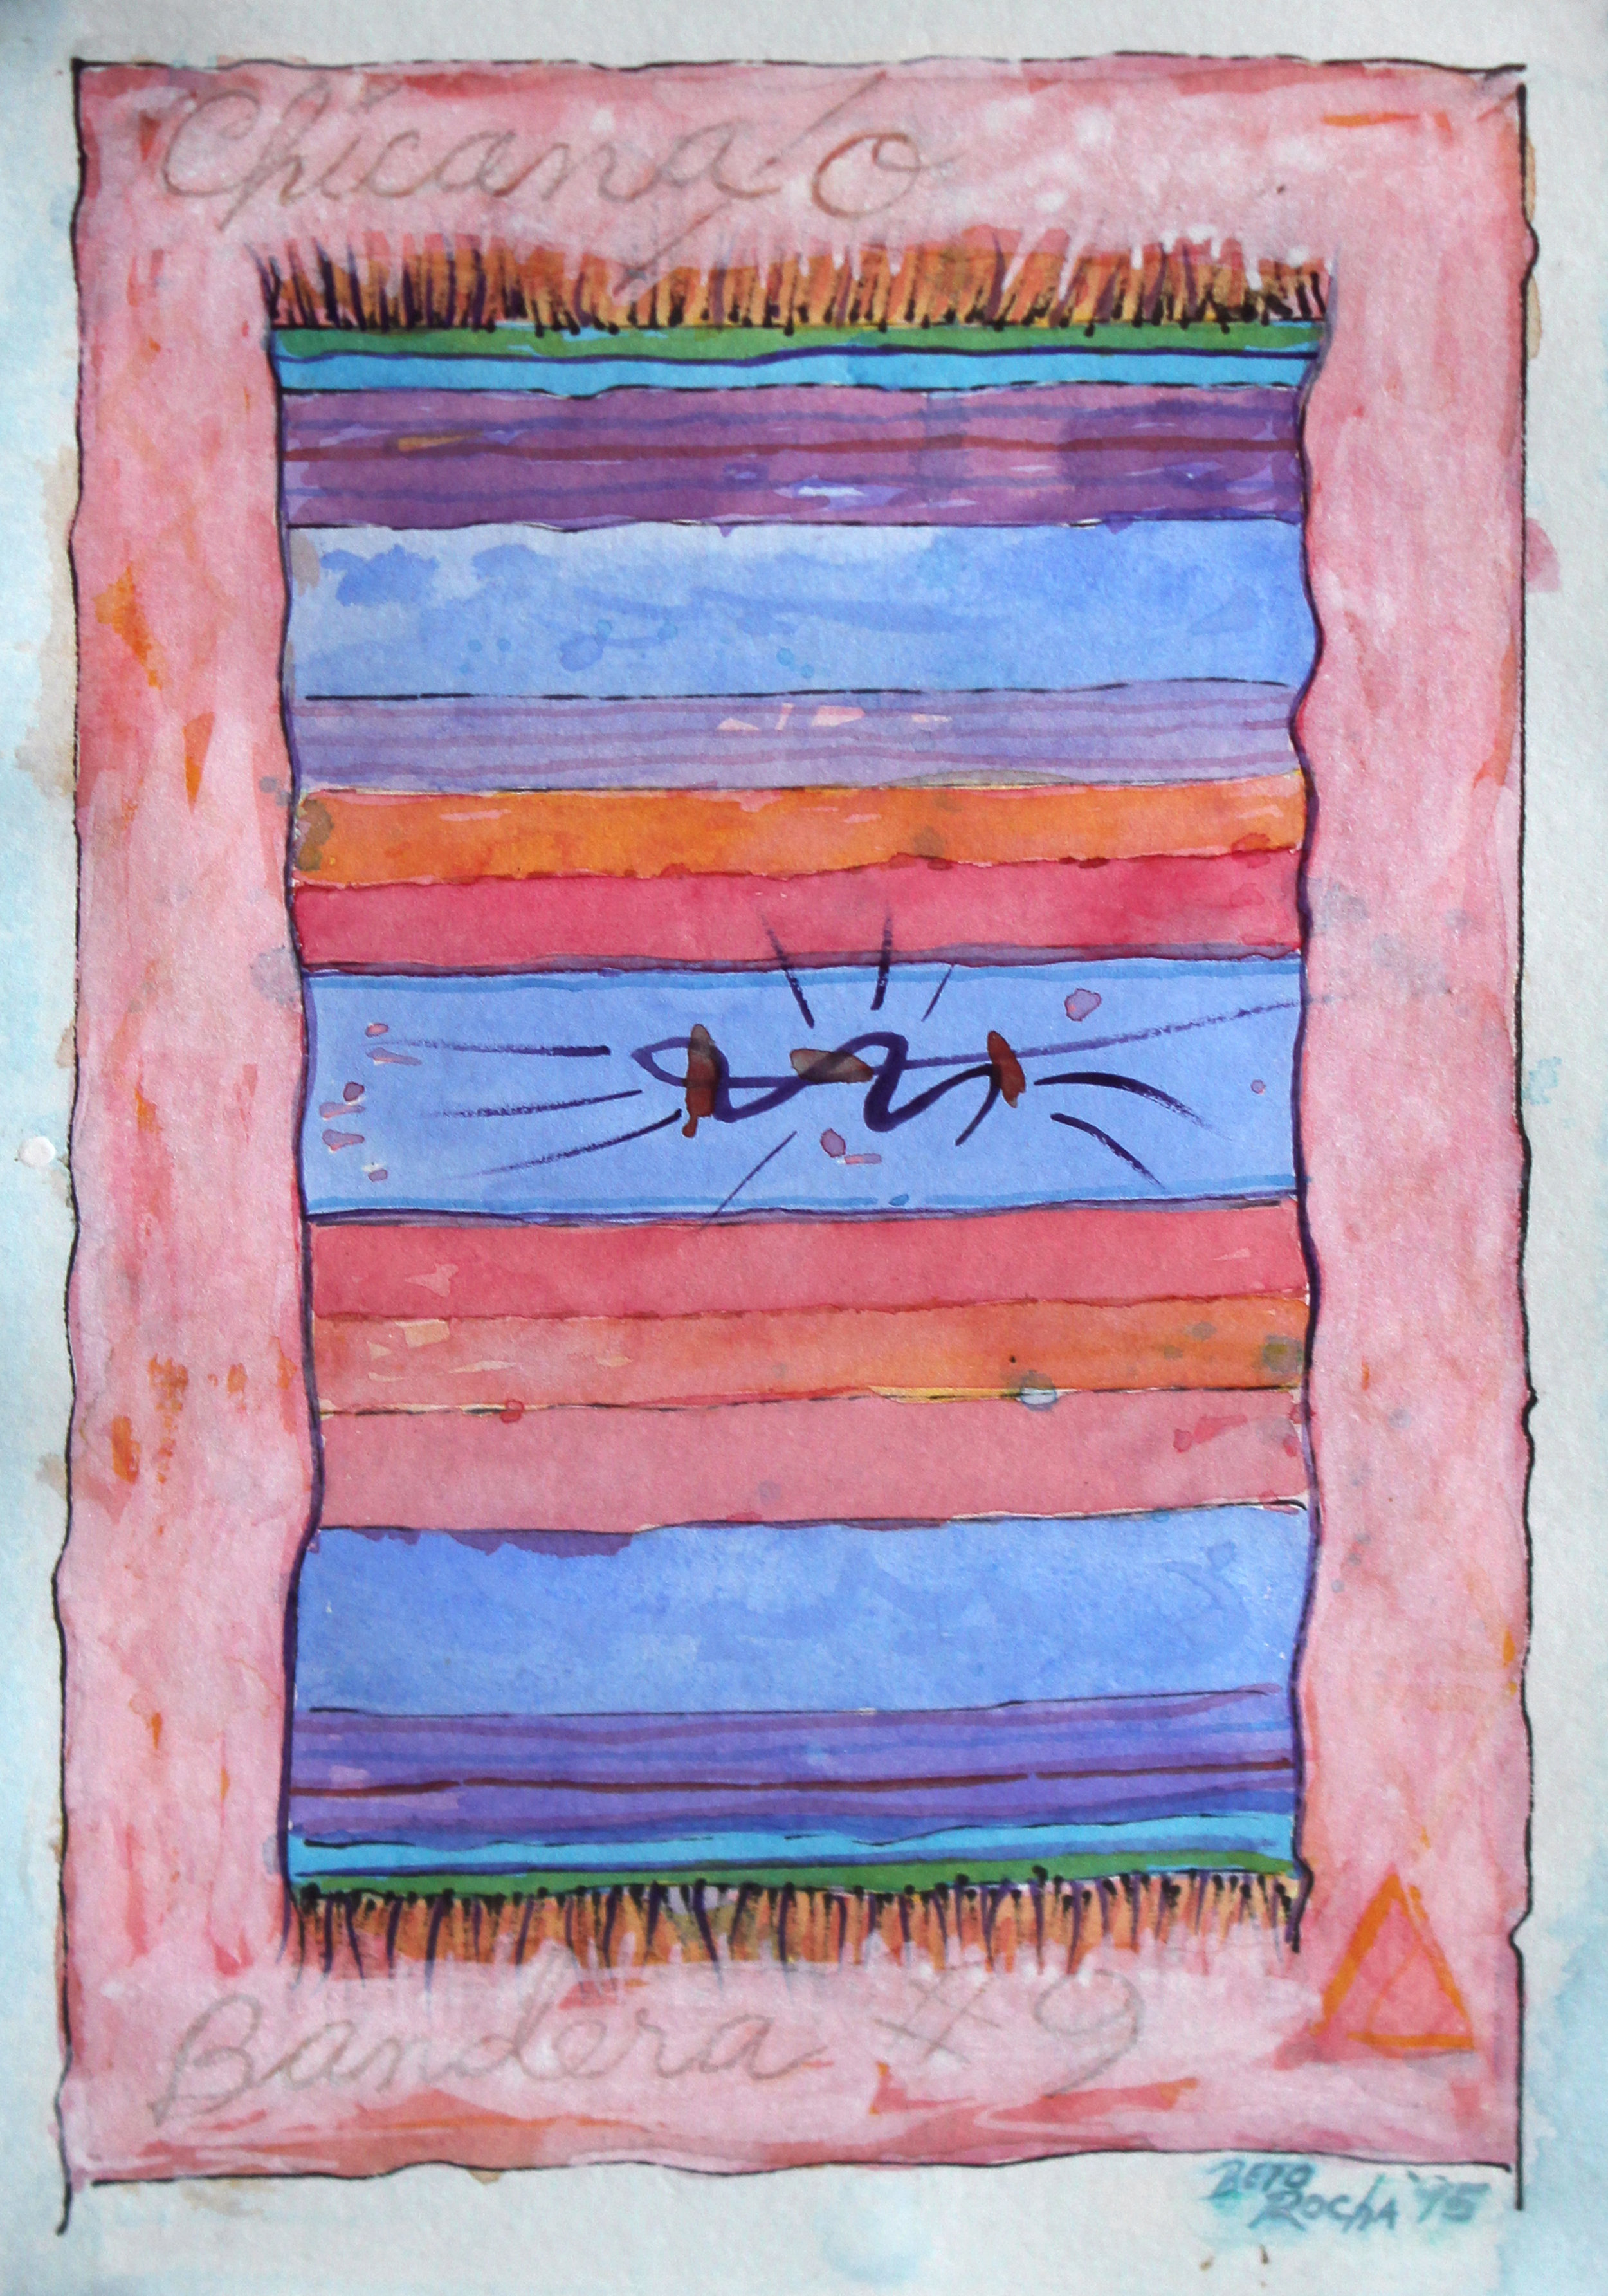 Beto de la Rocha    Chicana/o Bandera #9 , 1995 Watercolor and mixed media on paper Signed, titled and dated on recto Sheet: 12.5 x 8 inches; Framed: 18 x 14 inches Estimate: $3,000/$4,000